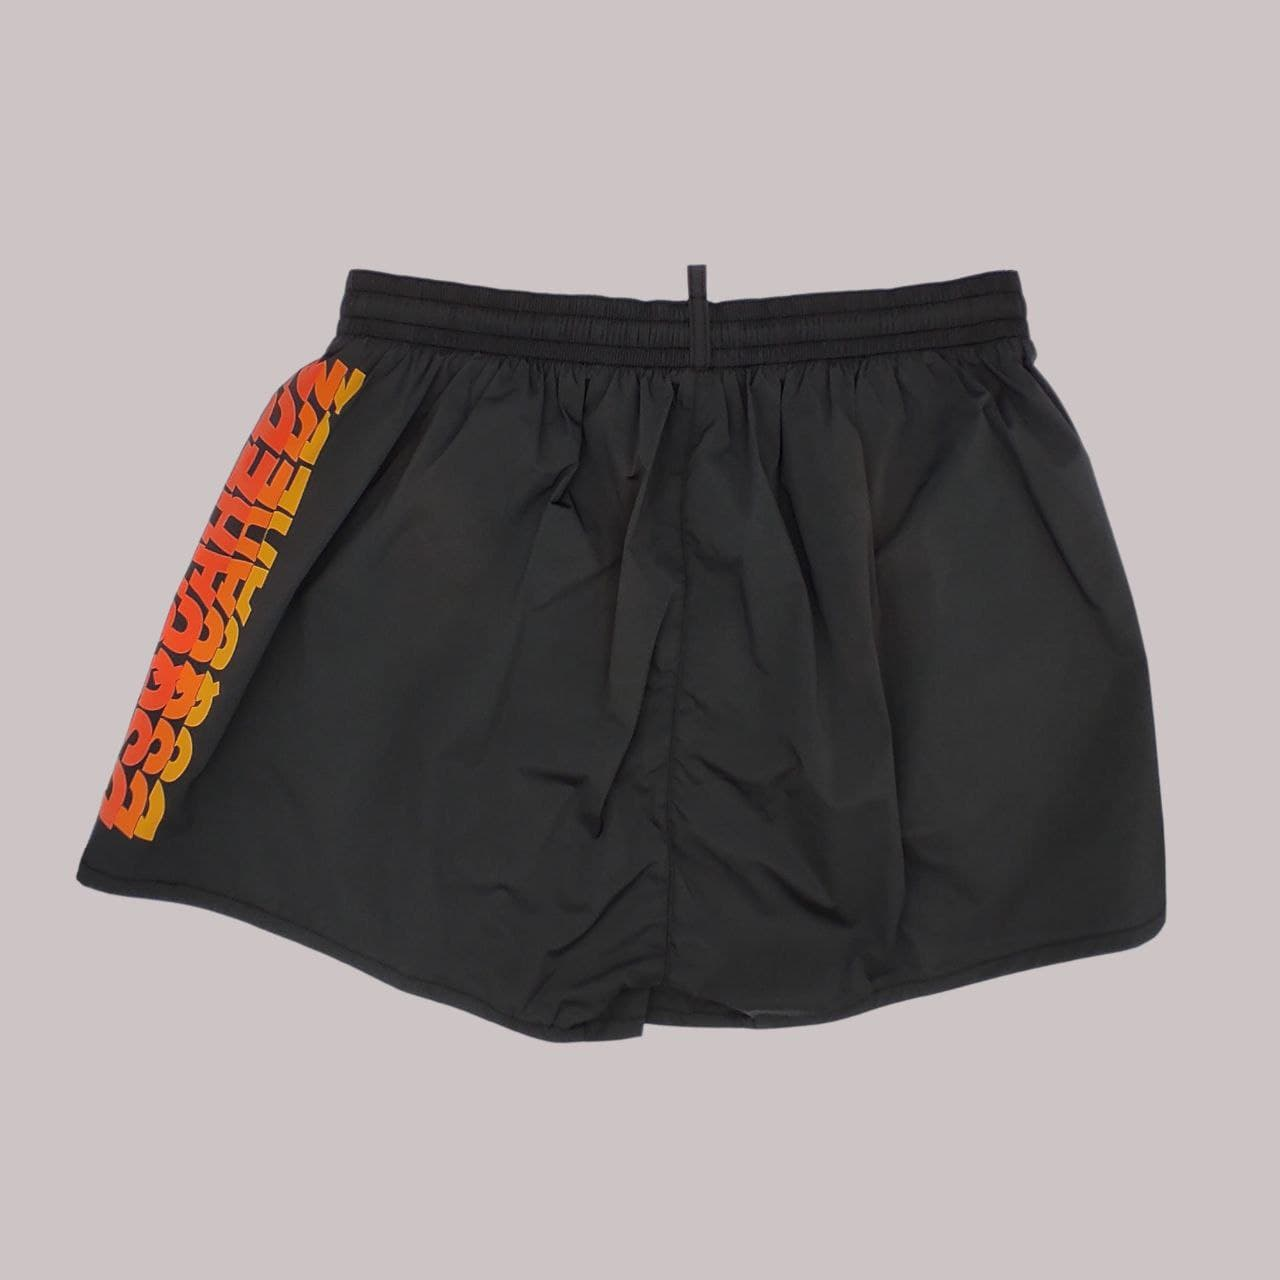 shorts logo riflesso laterale Dsquared2   Costume   D7B8P3790018